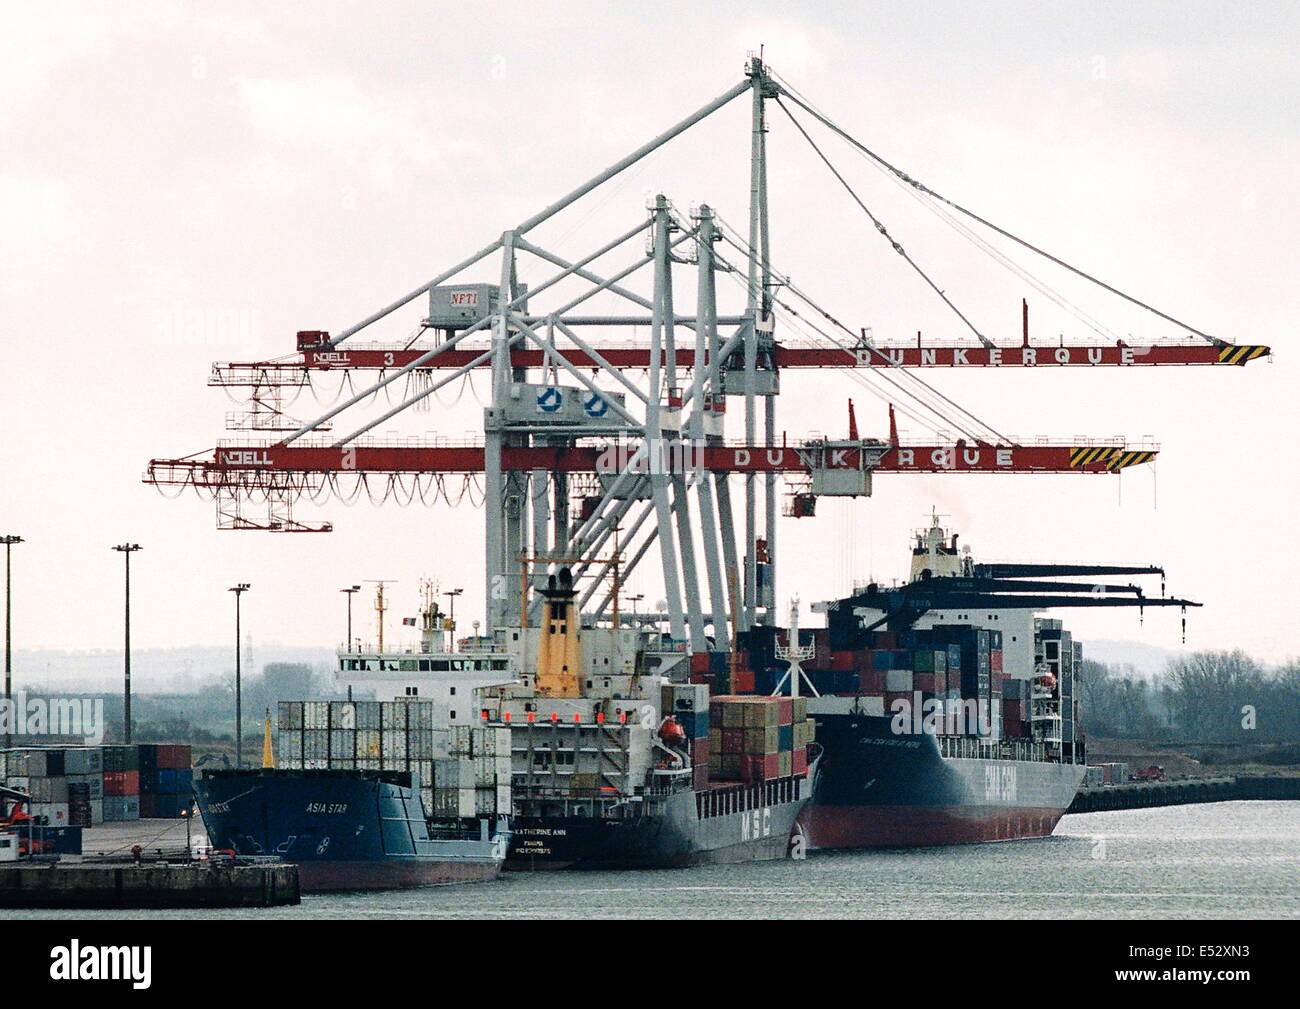 AJAXNETPHOTO. DUNKERQUE, FRANCE-Container ships and cranes at the docks. PHOTO:JONATHAN EASTLAND/AJAX Stock Photo